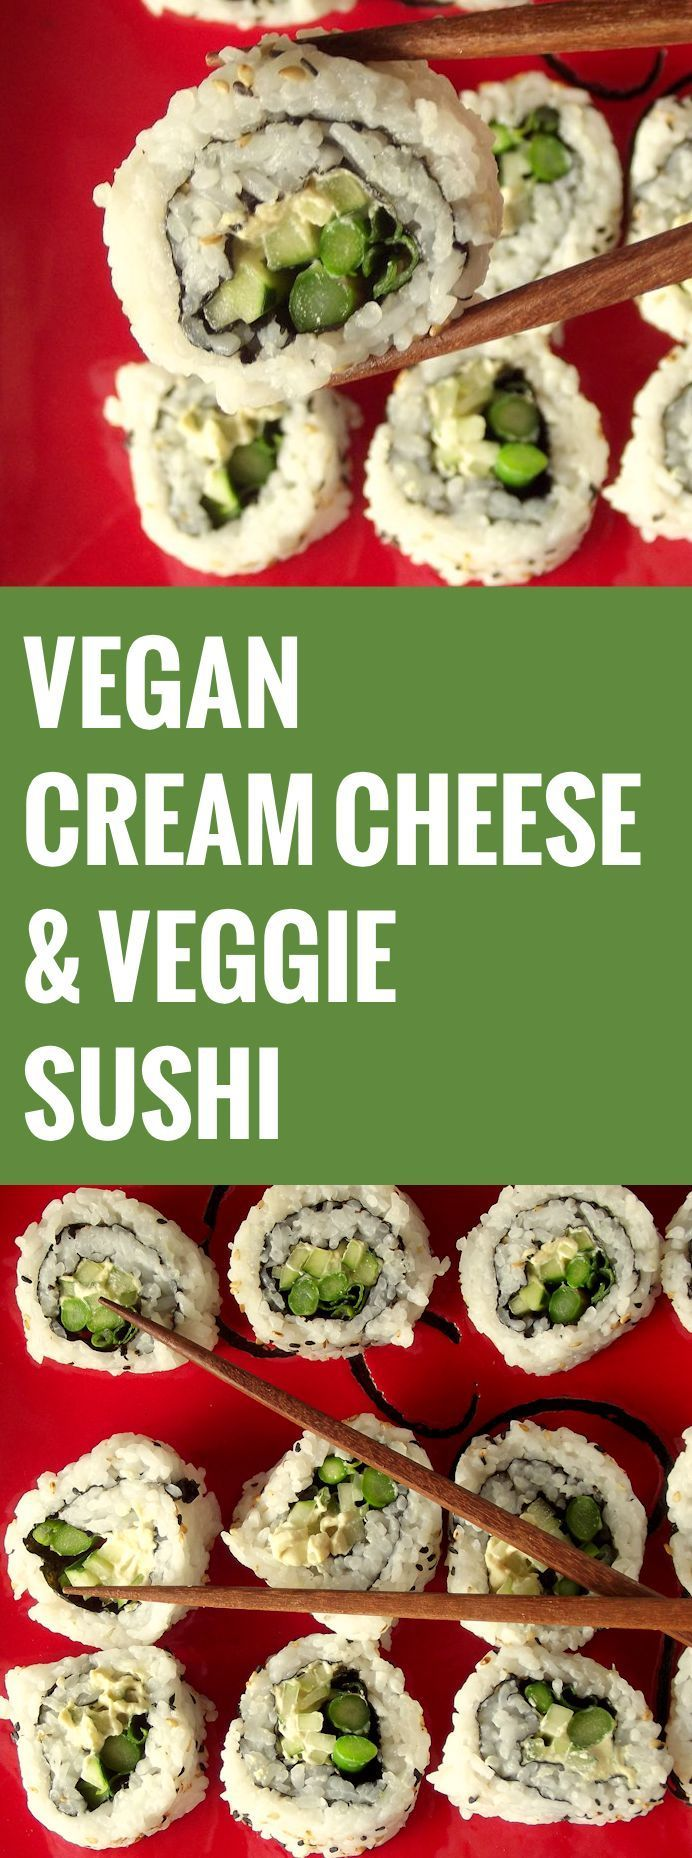 the health benefits of a vegetarian diet at http://www.rawveganismgazette.com